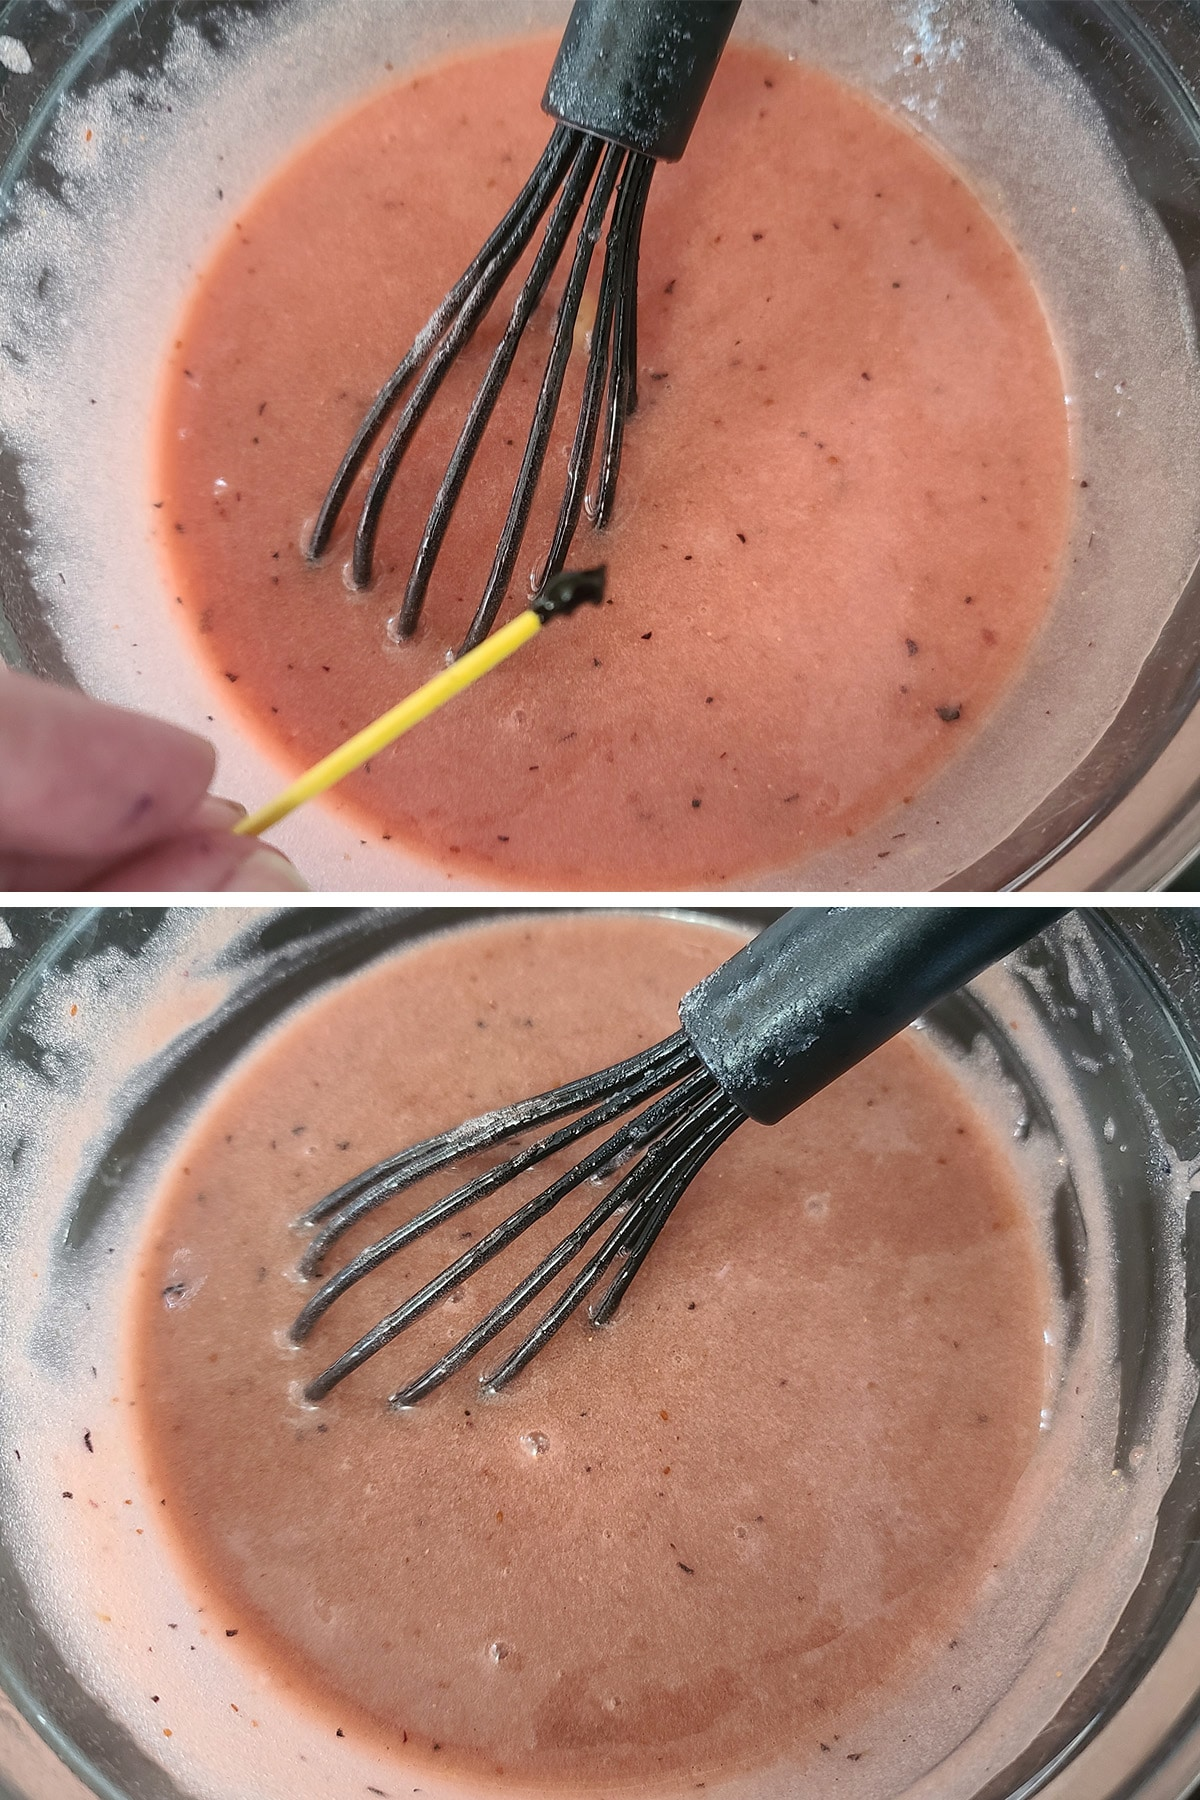 A small amount of purple food colouring being stirred into the curd.